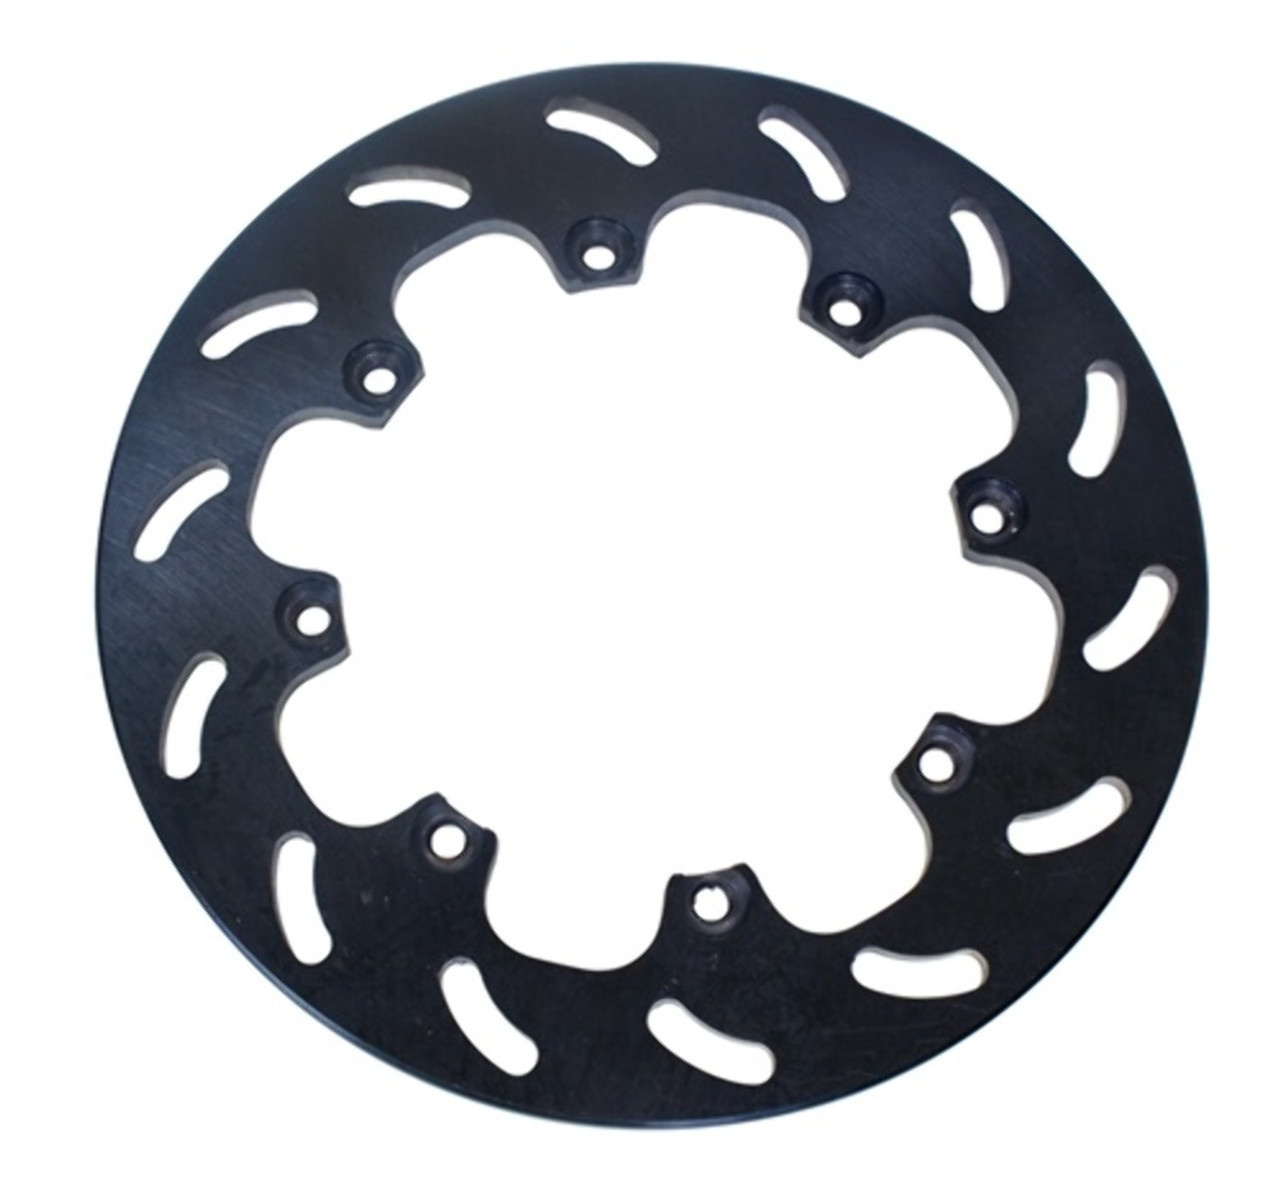 16-2510-2 LEFT ROTOR ONLY FOR KIT